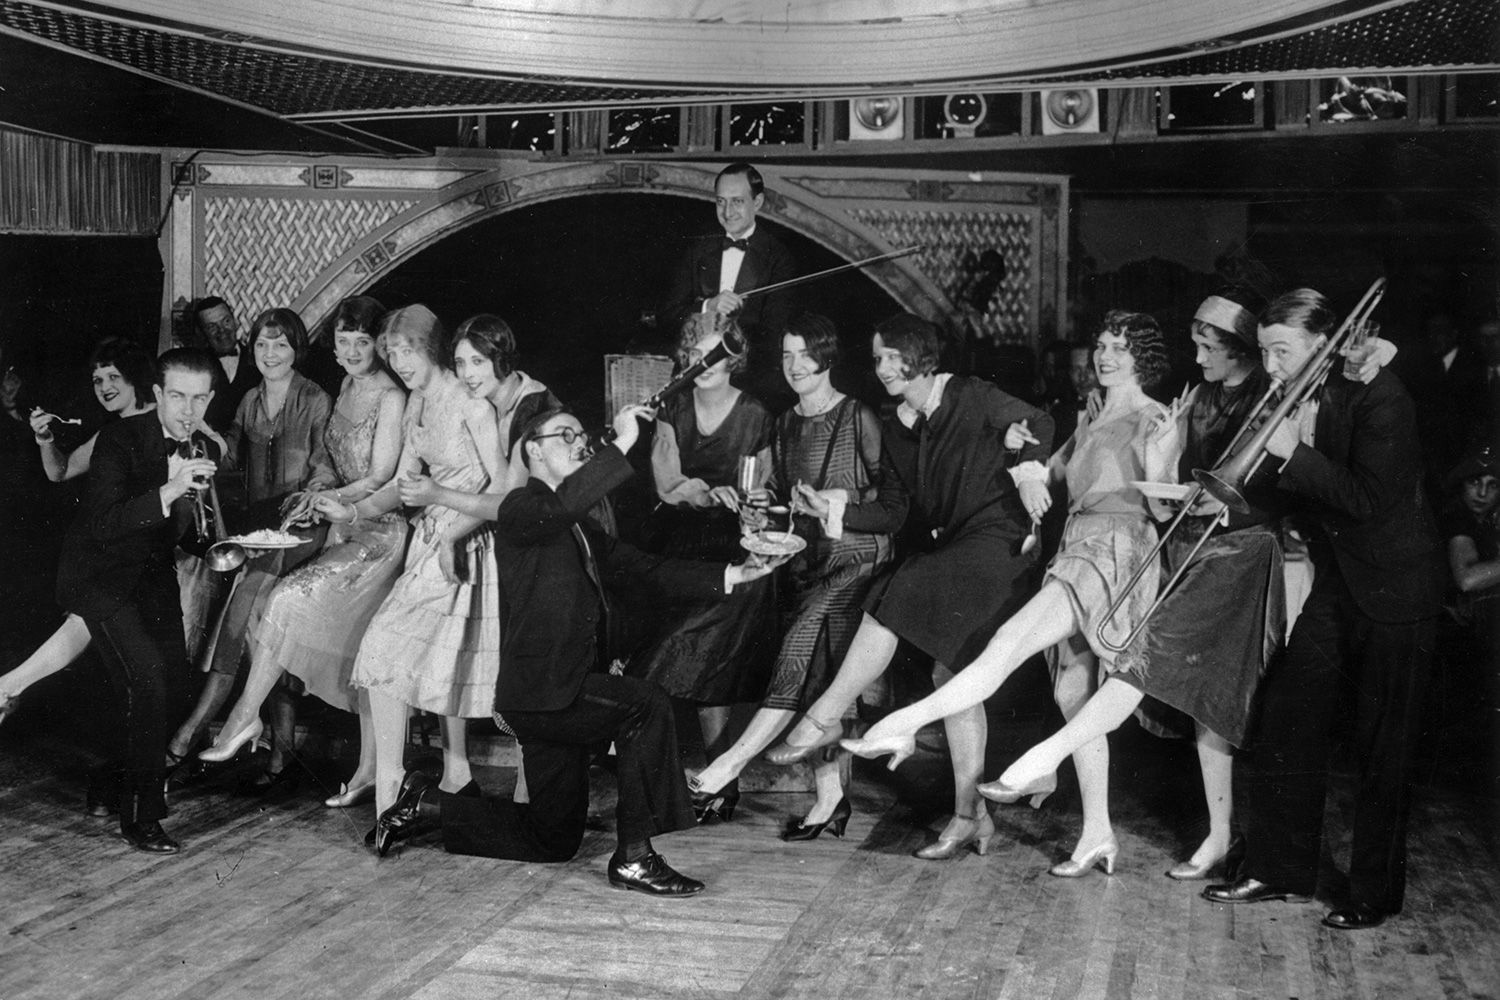 What Were Flappers Like in the Roaring Twenties?